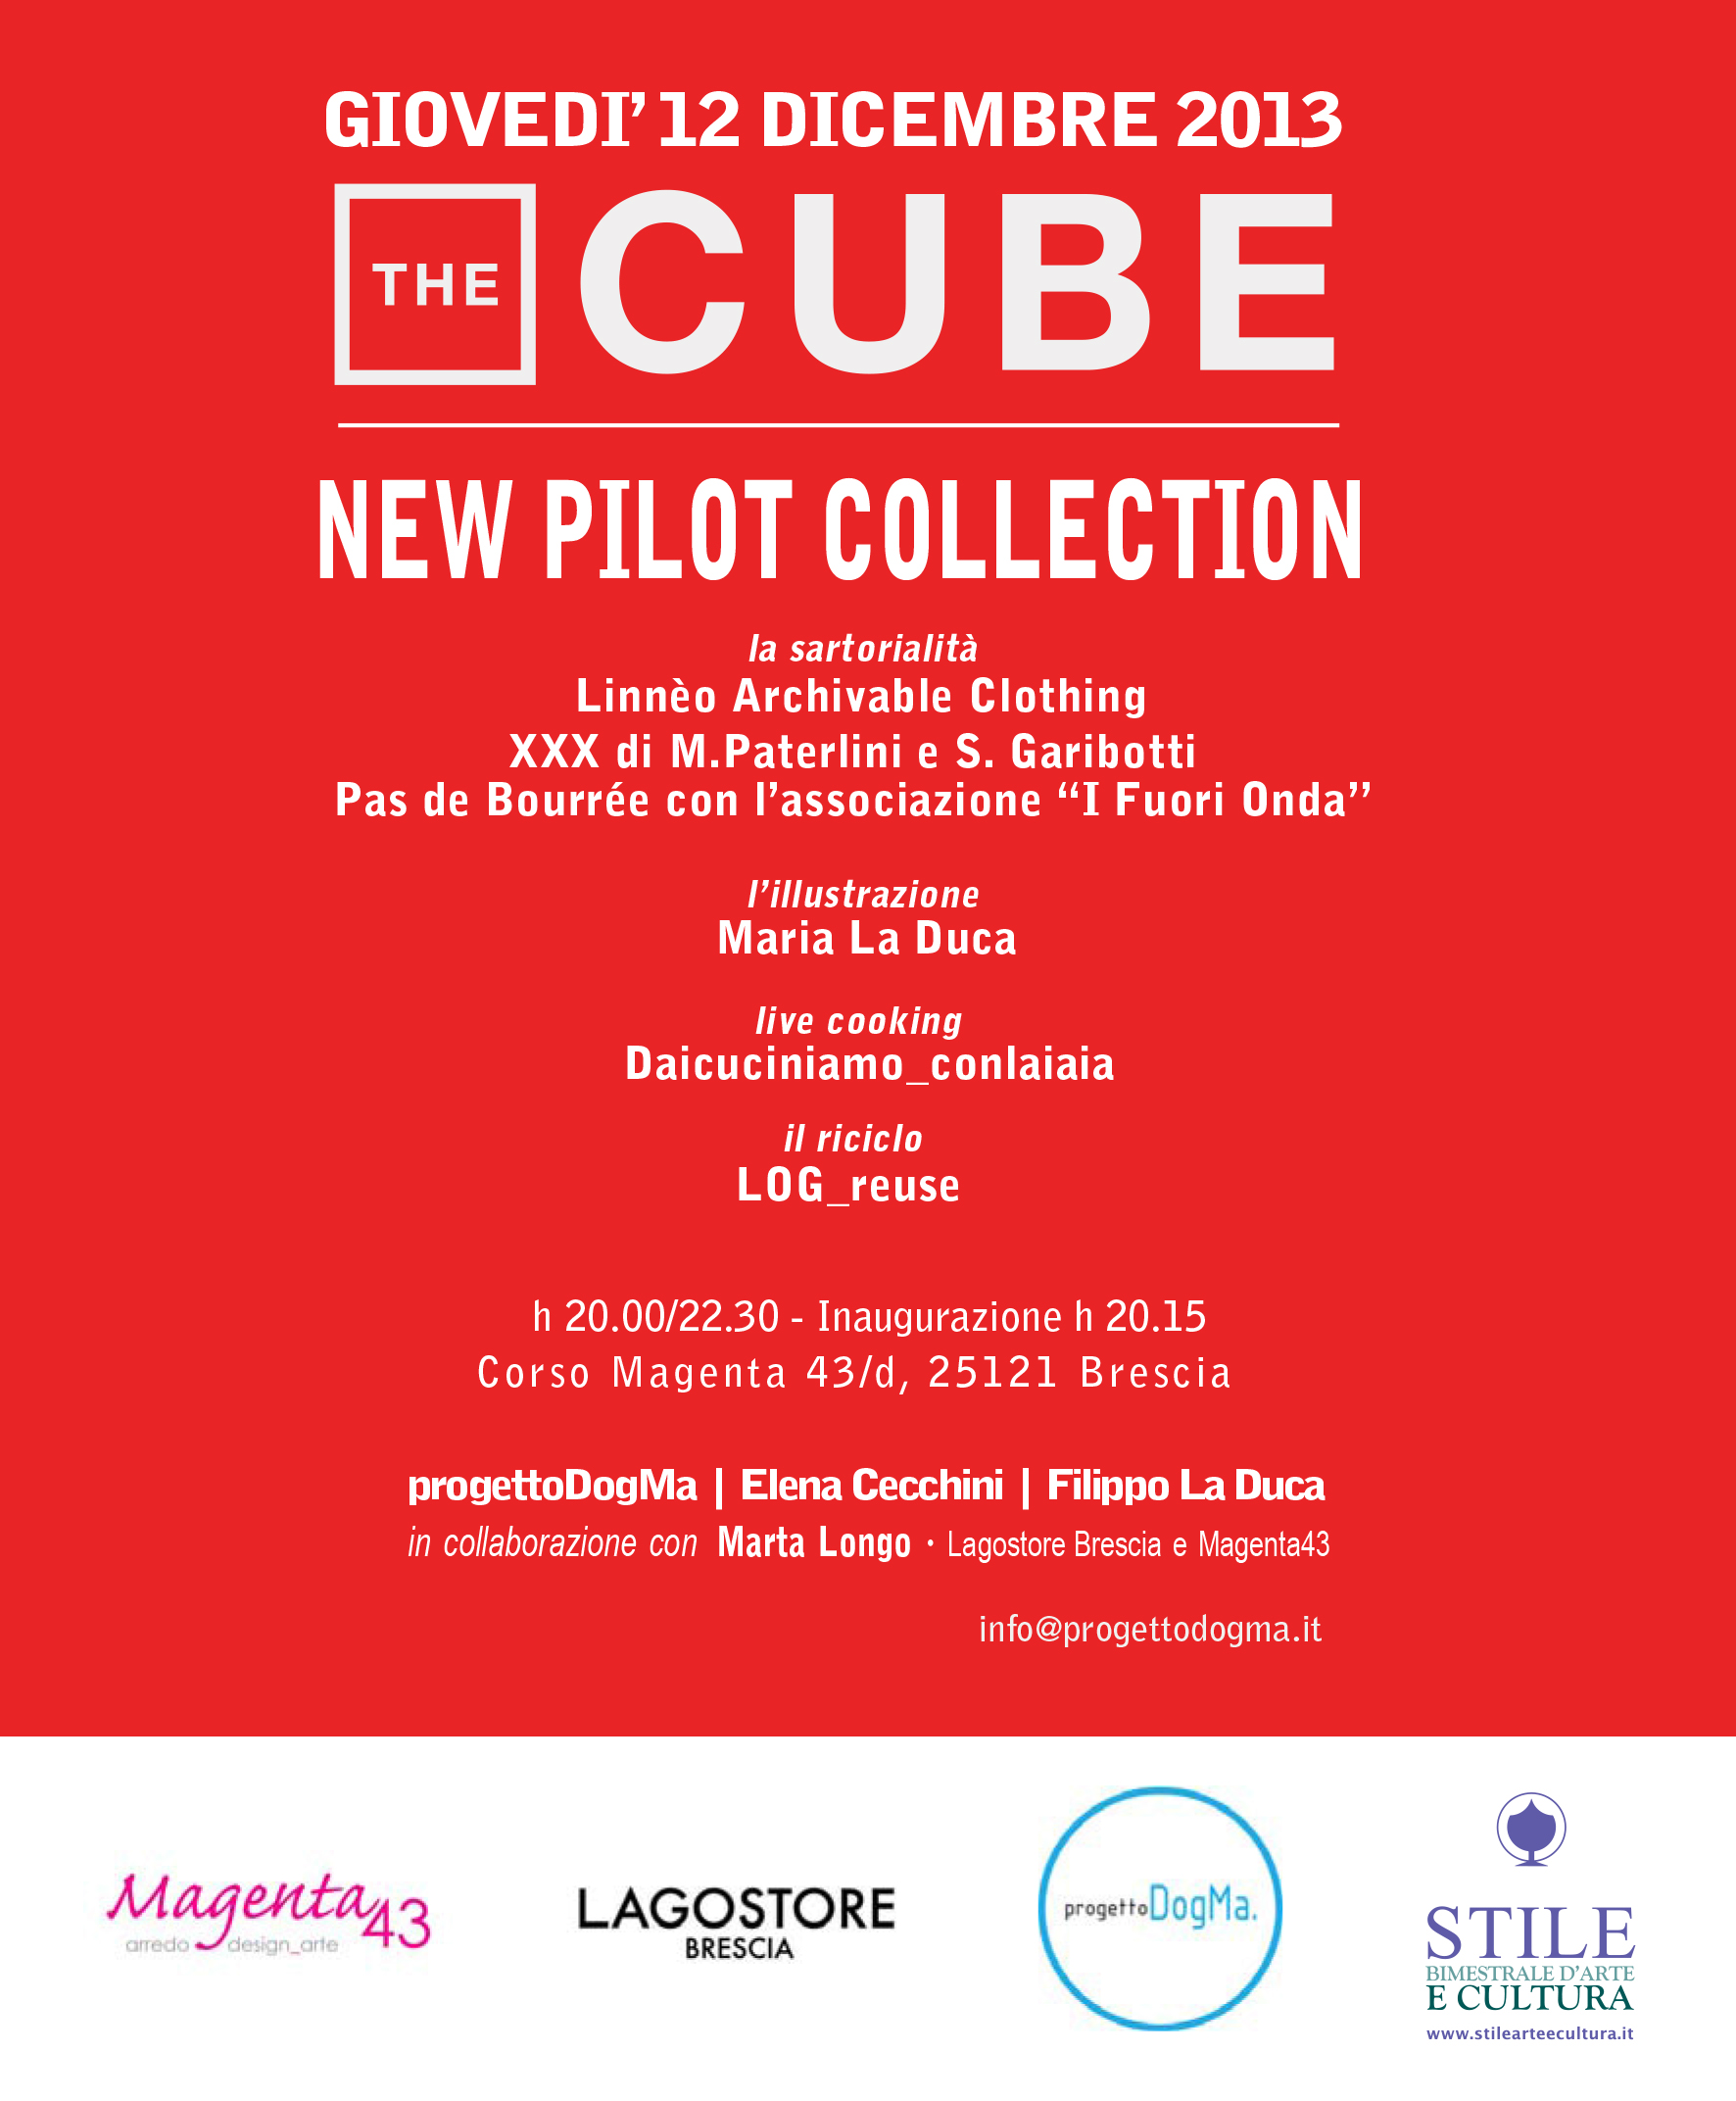 THE CUBE - New Pilot Collection